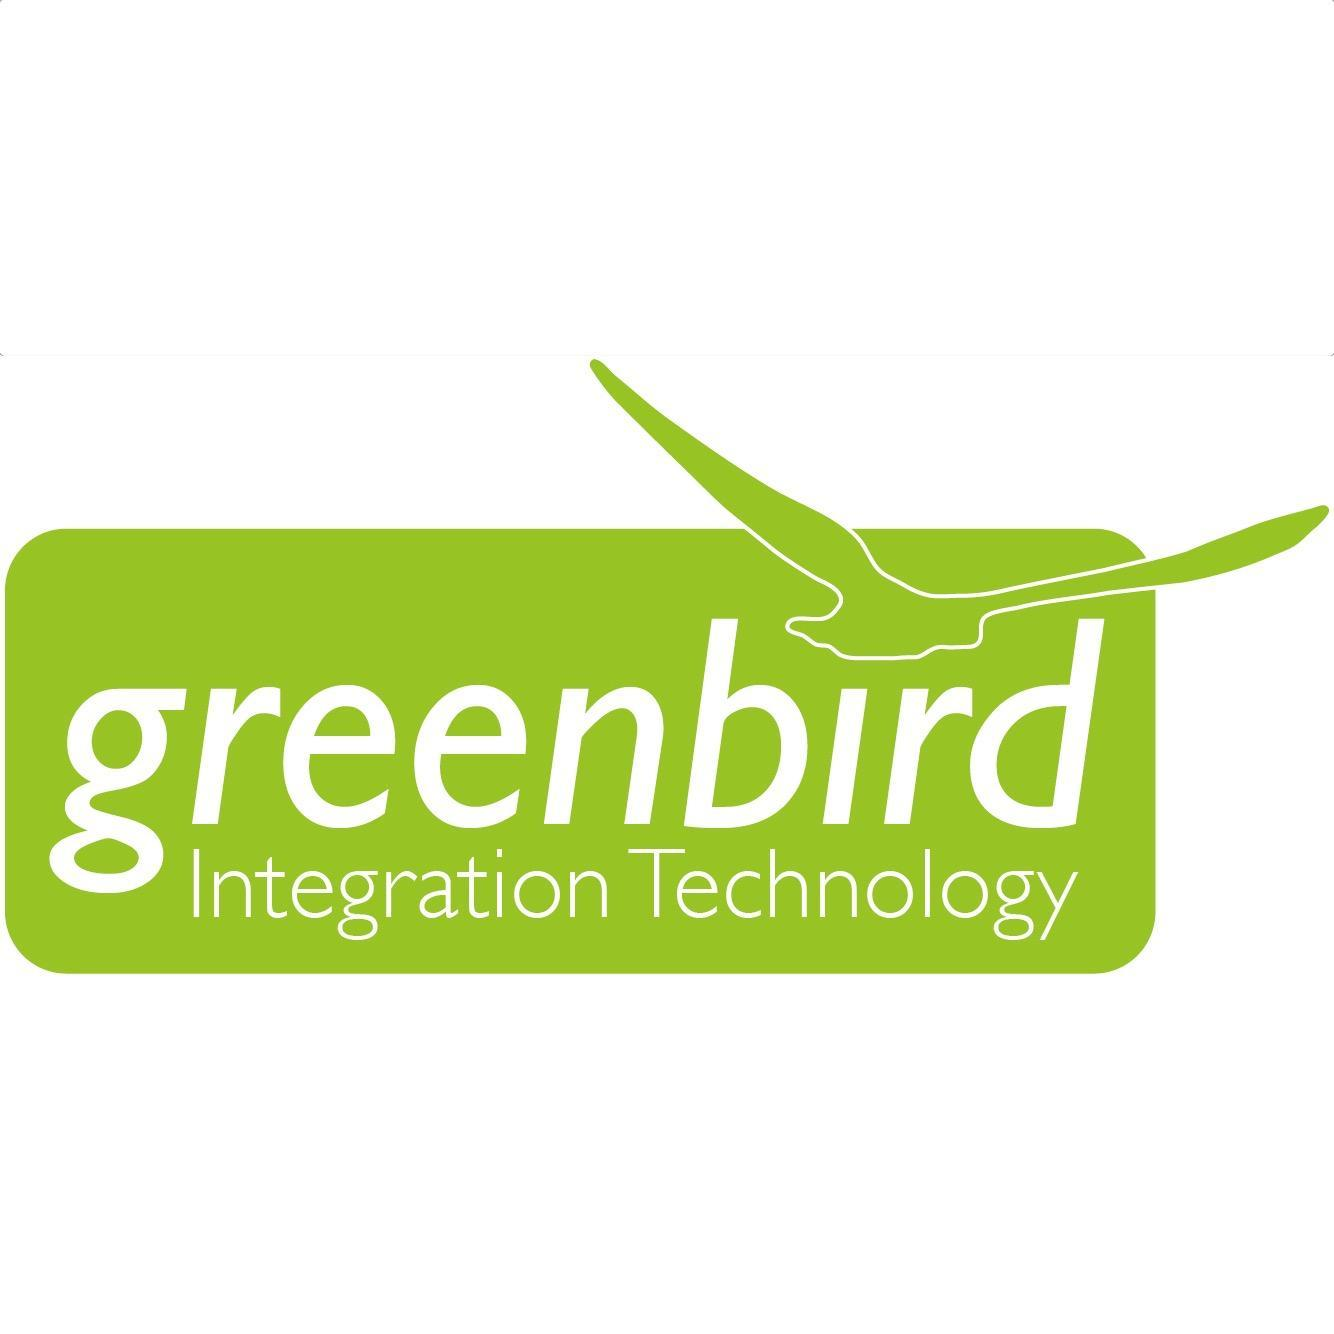 greenbird Int. Tech.